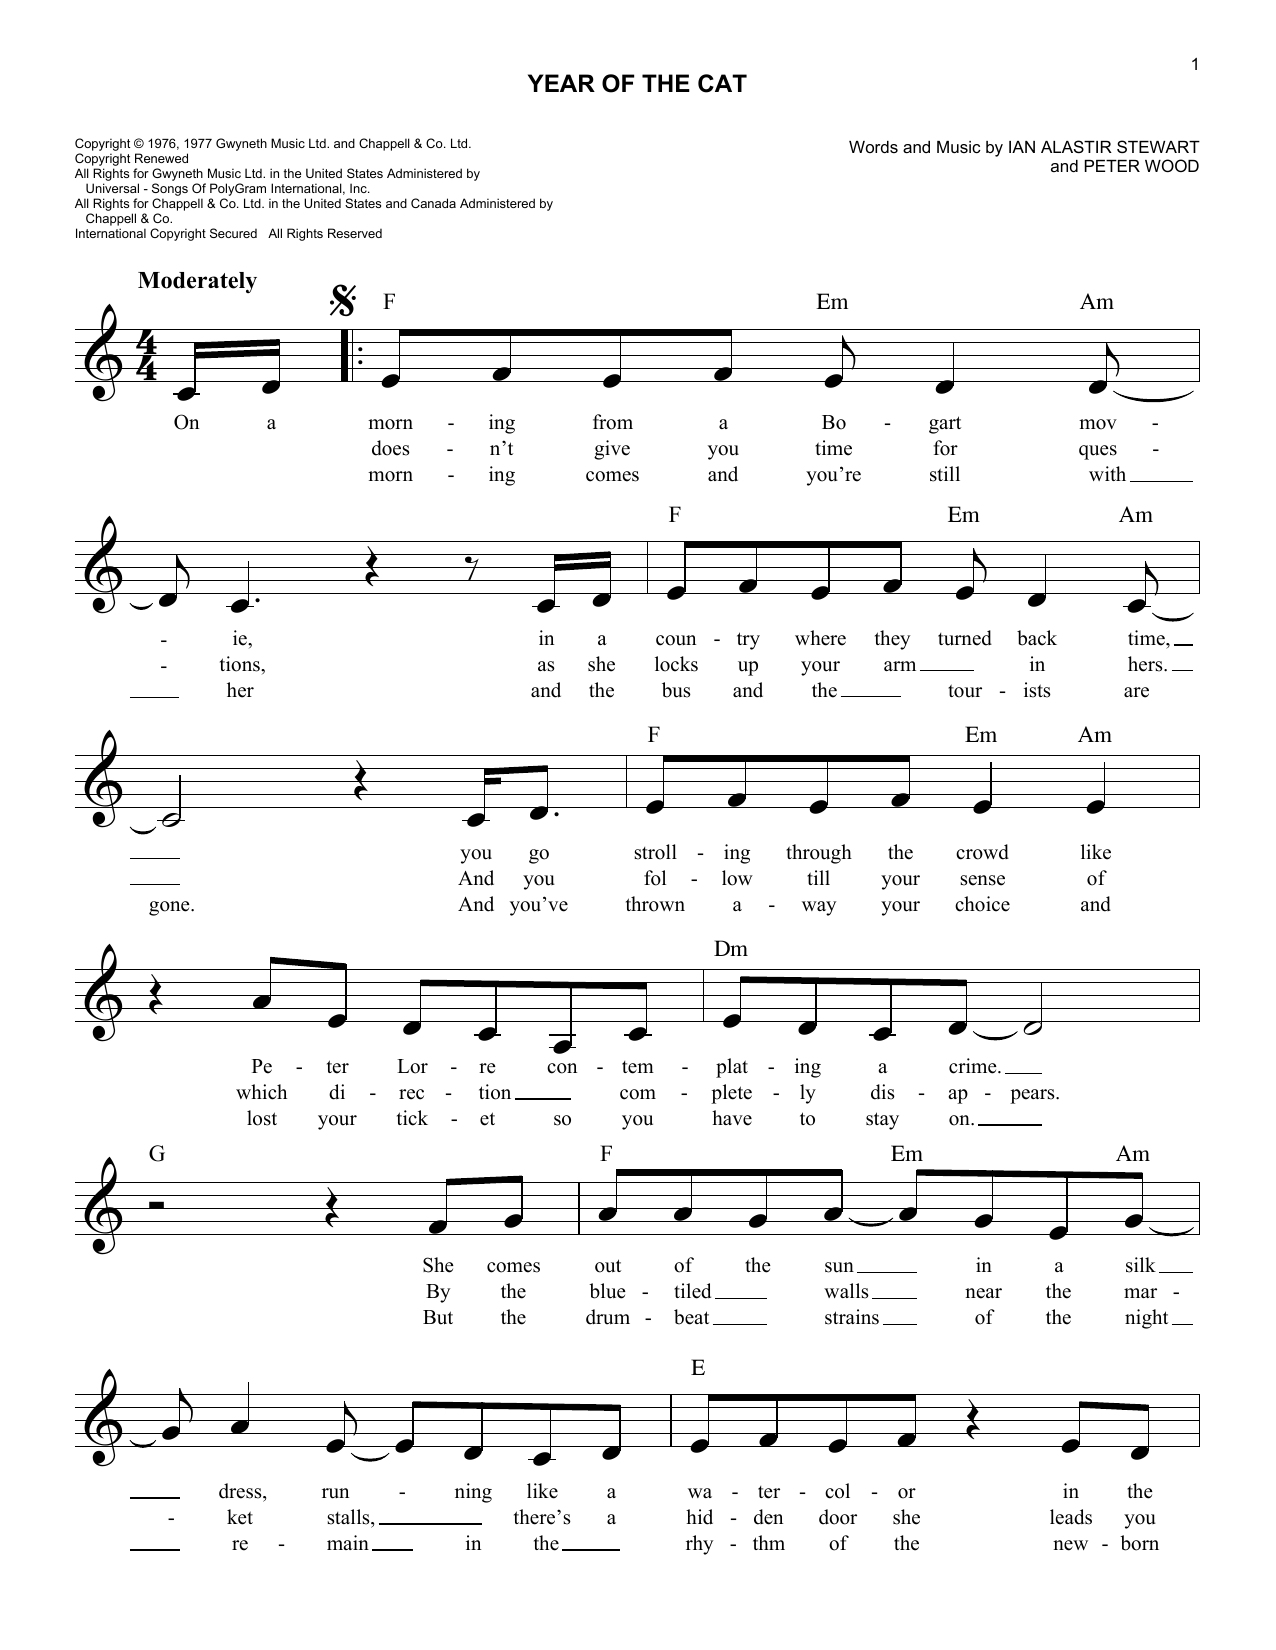 Peter Wood Year Of The Cat sheet music notes and chords. Download Printable PDF.